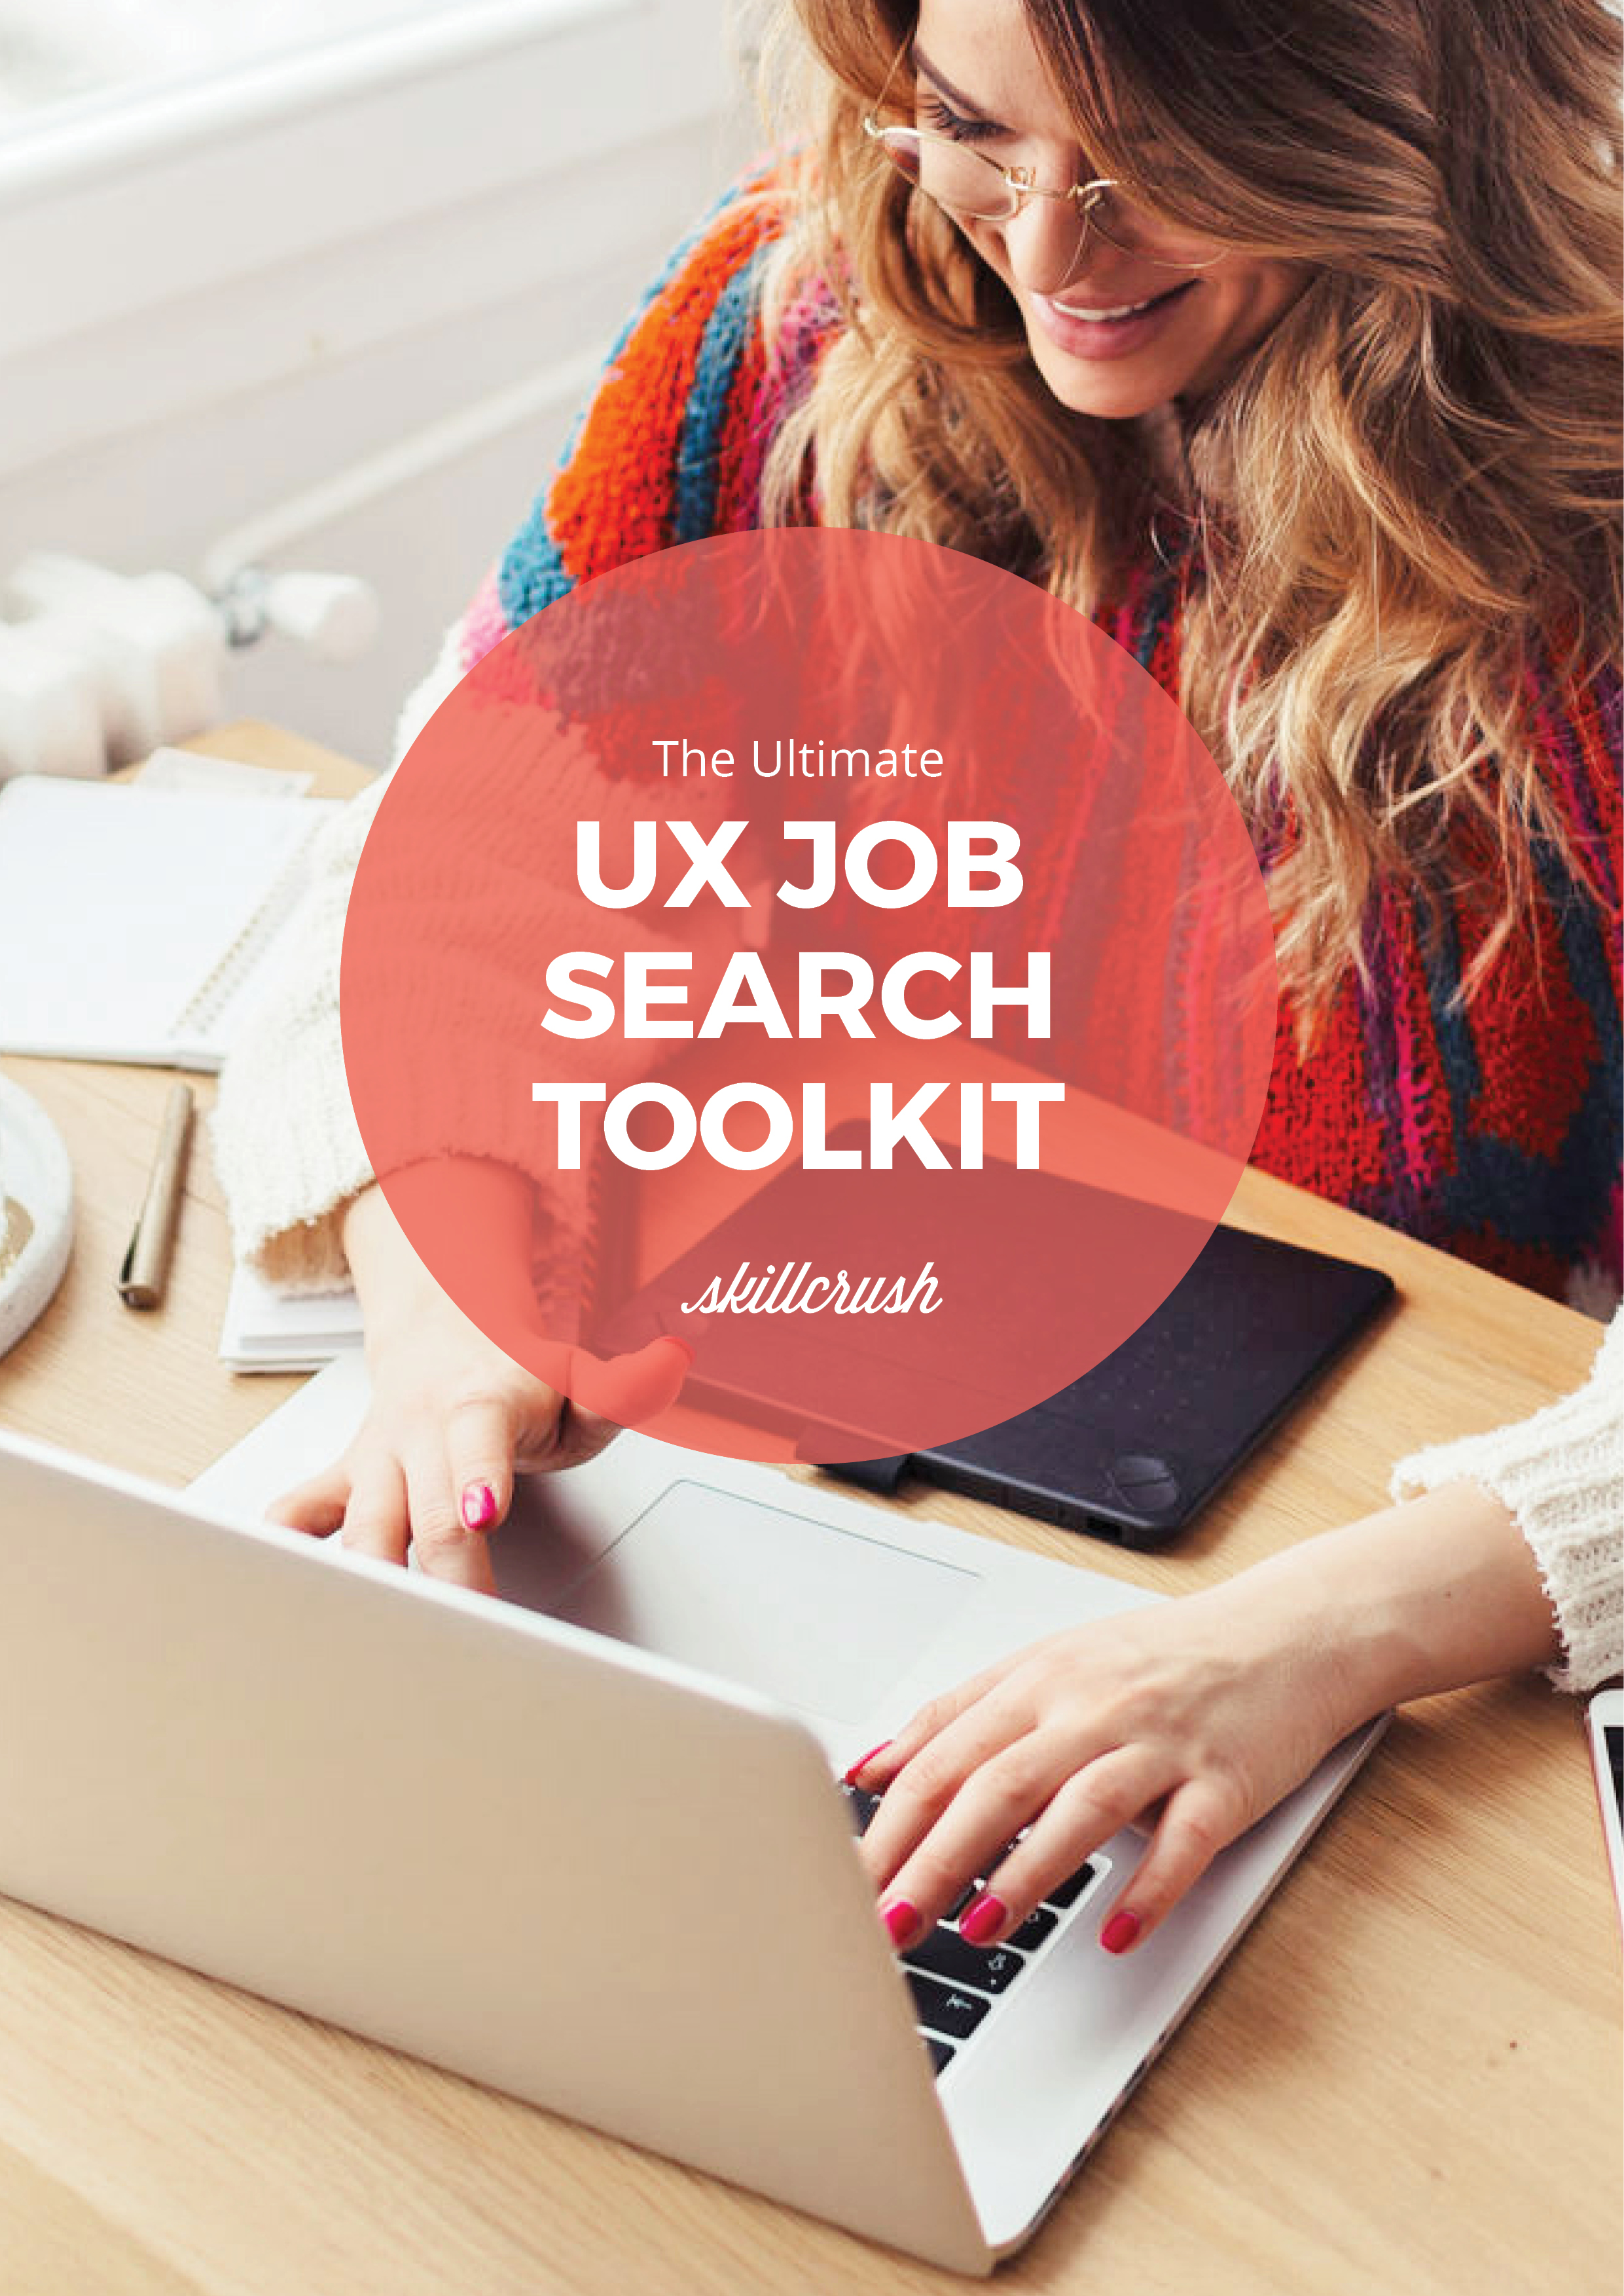 Want to Know EXACTLY How to Land a UX Job?